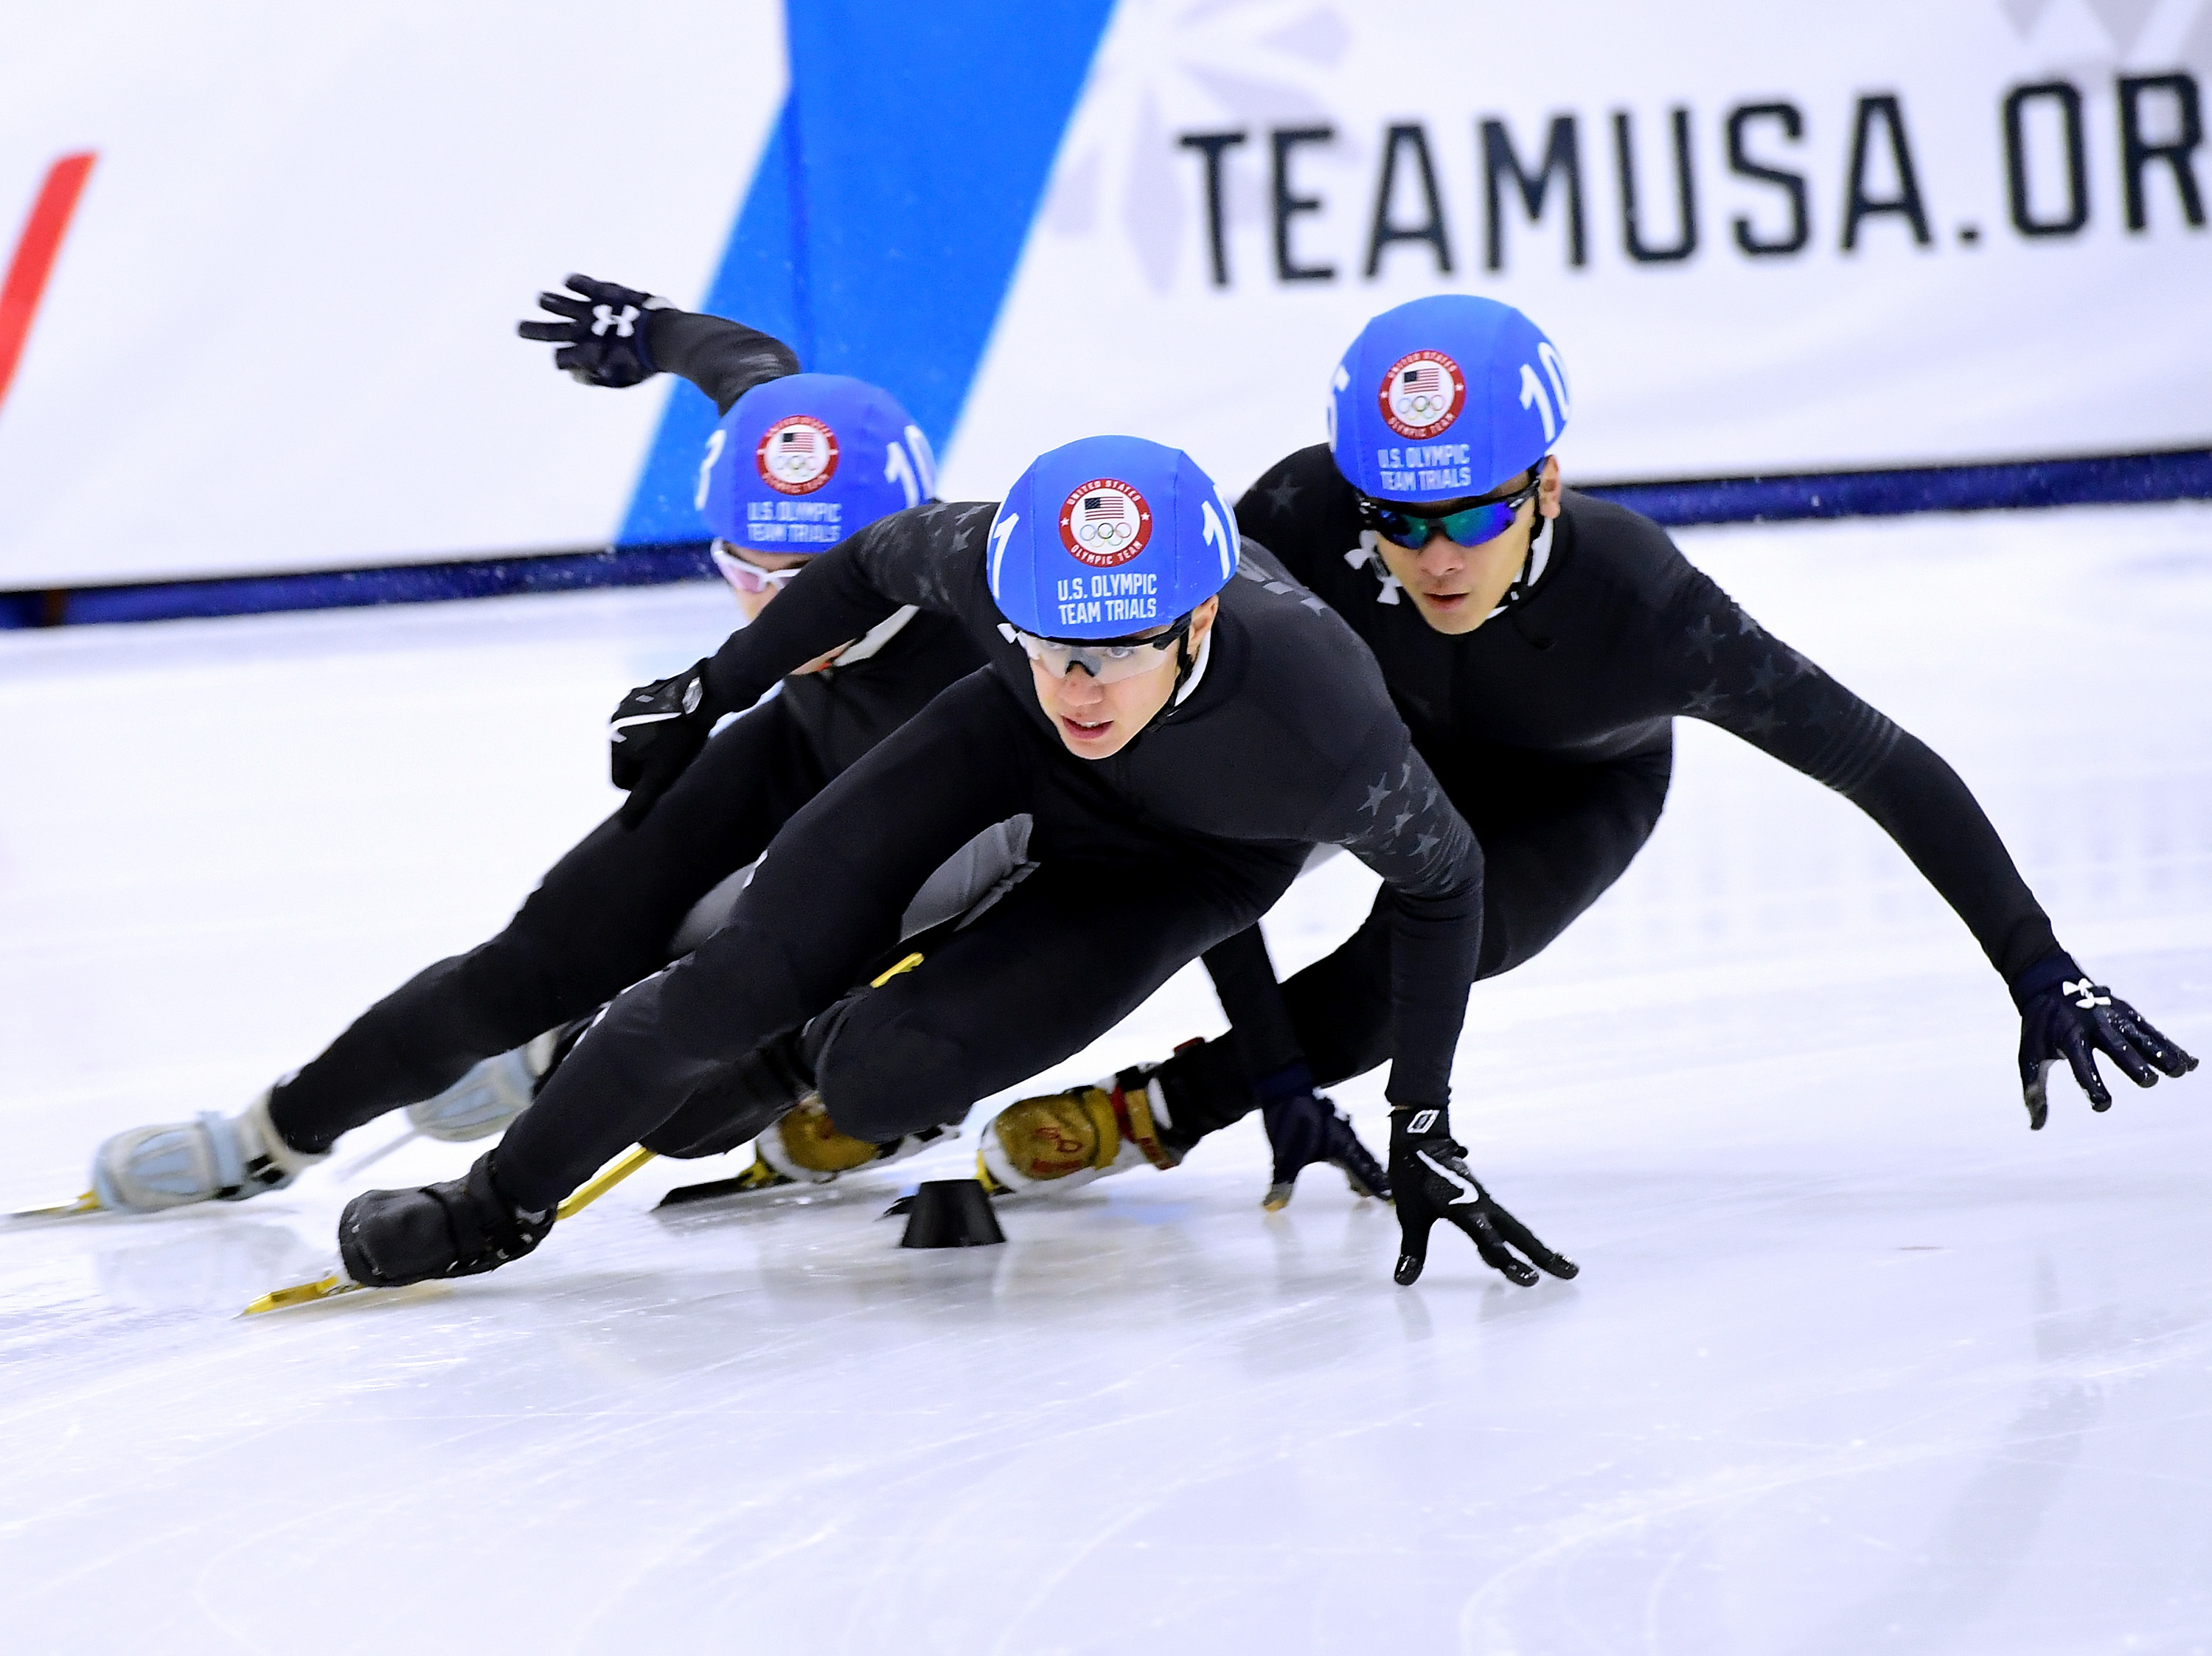 J.R. Celski #102 turns ahead of Aaron Tran #105 during the 2018 U.S. Speedskating Short Track Olympic Team Trials at the Utah Olympic Oval on December 17, 2017 in Salt Lake City, Utah. Harry How—Getty Images.